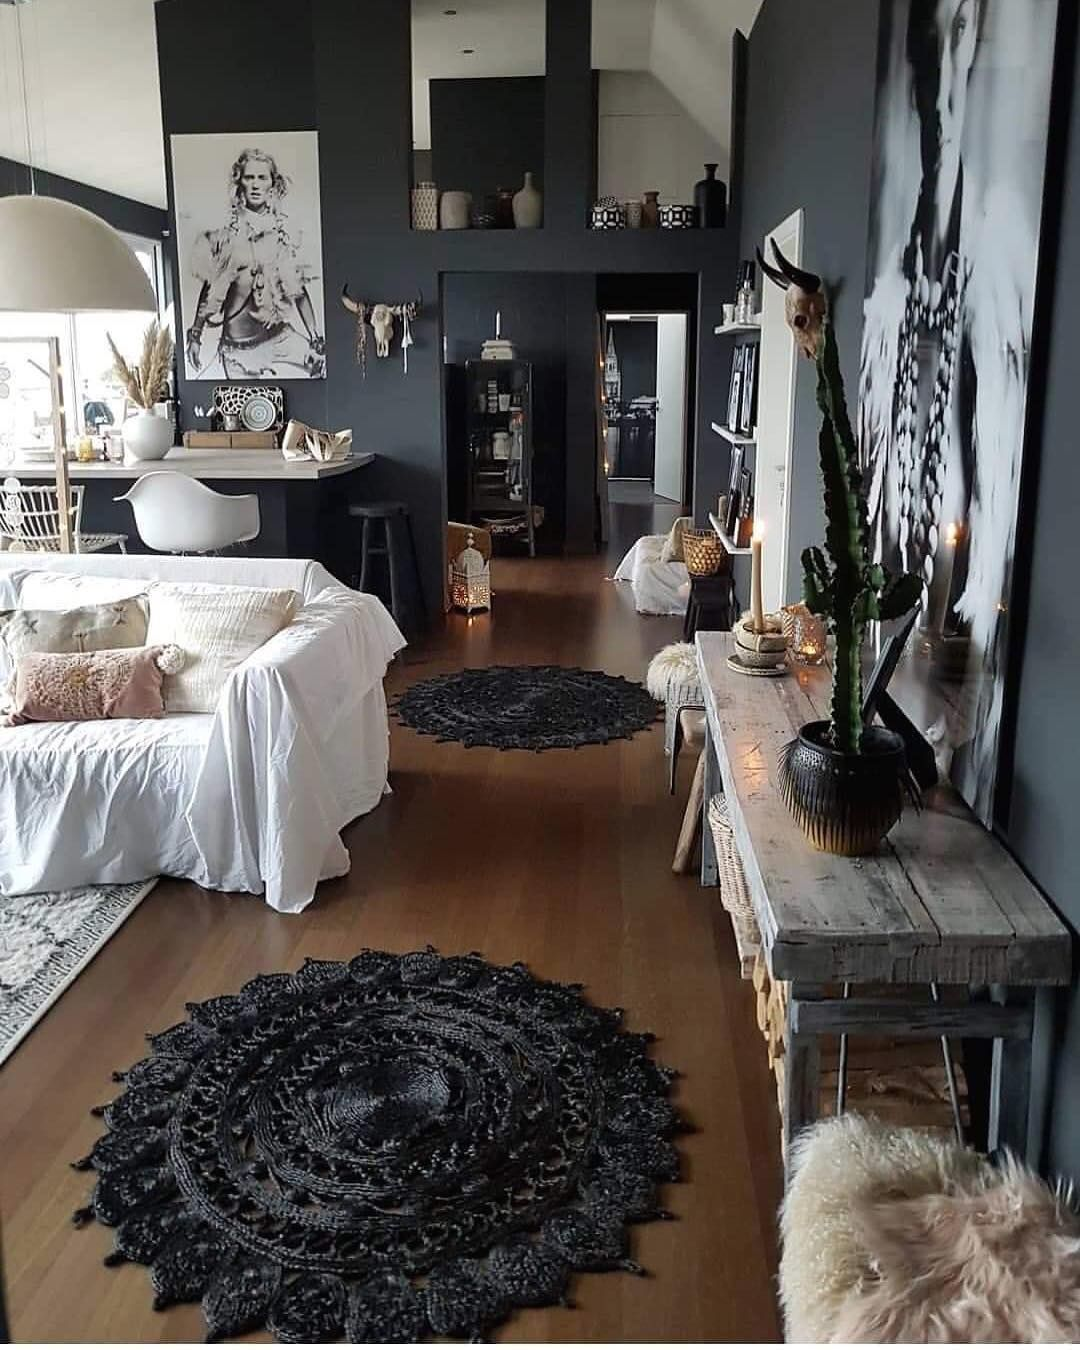 Top 11 Incredible Cozy And Rustic Chic Living Room For: Dark Home Decor Is So Cozy #homedecor #rustic